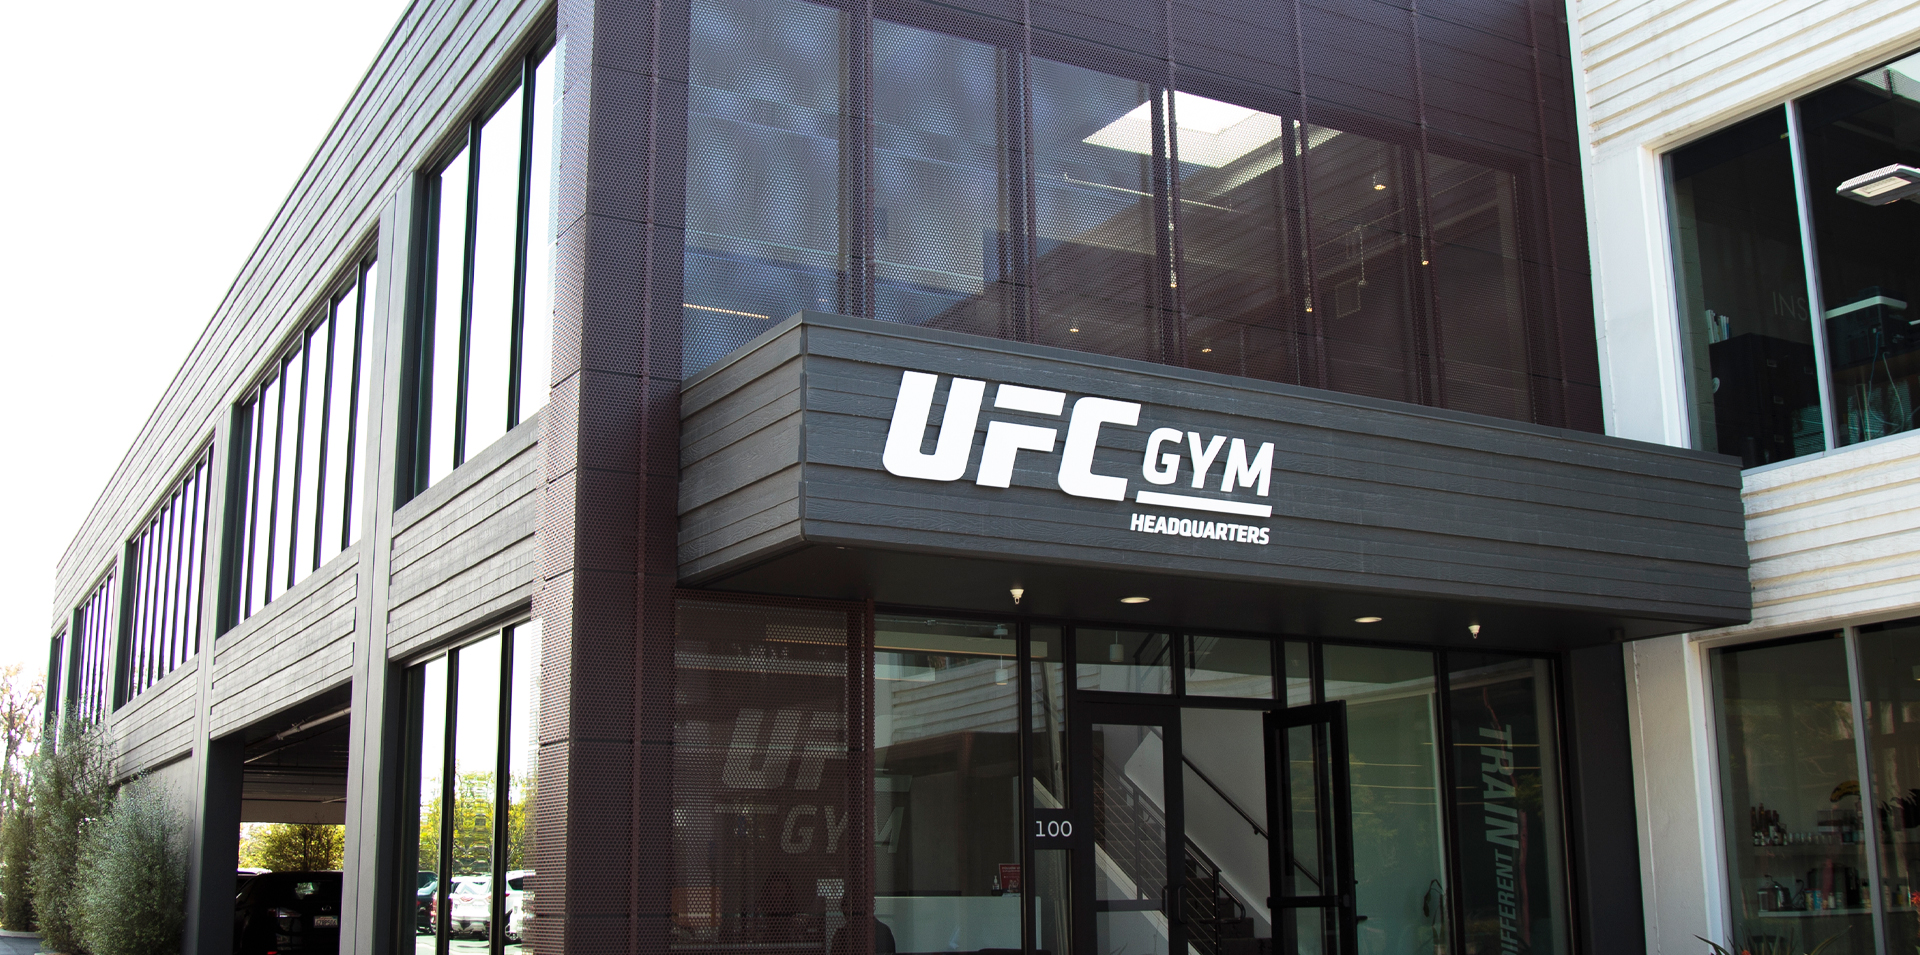 UFC GYM HEADQUARTERS Featured Image